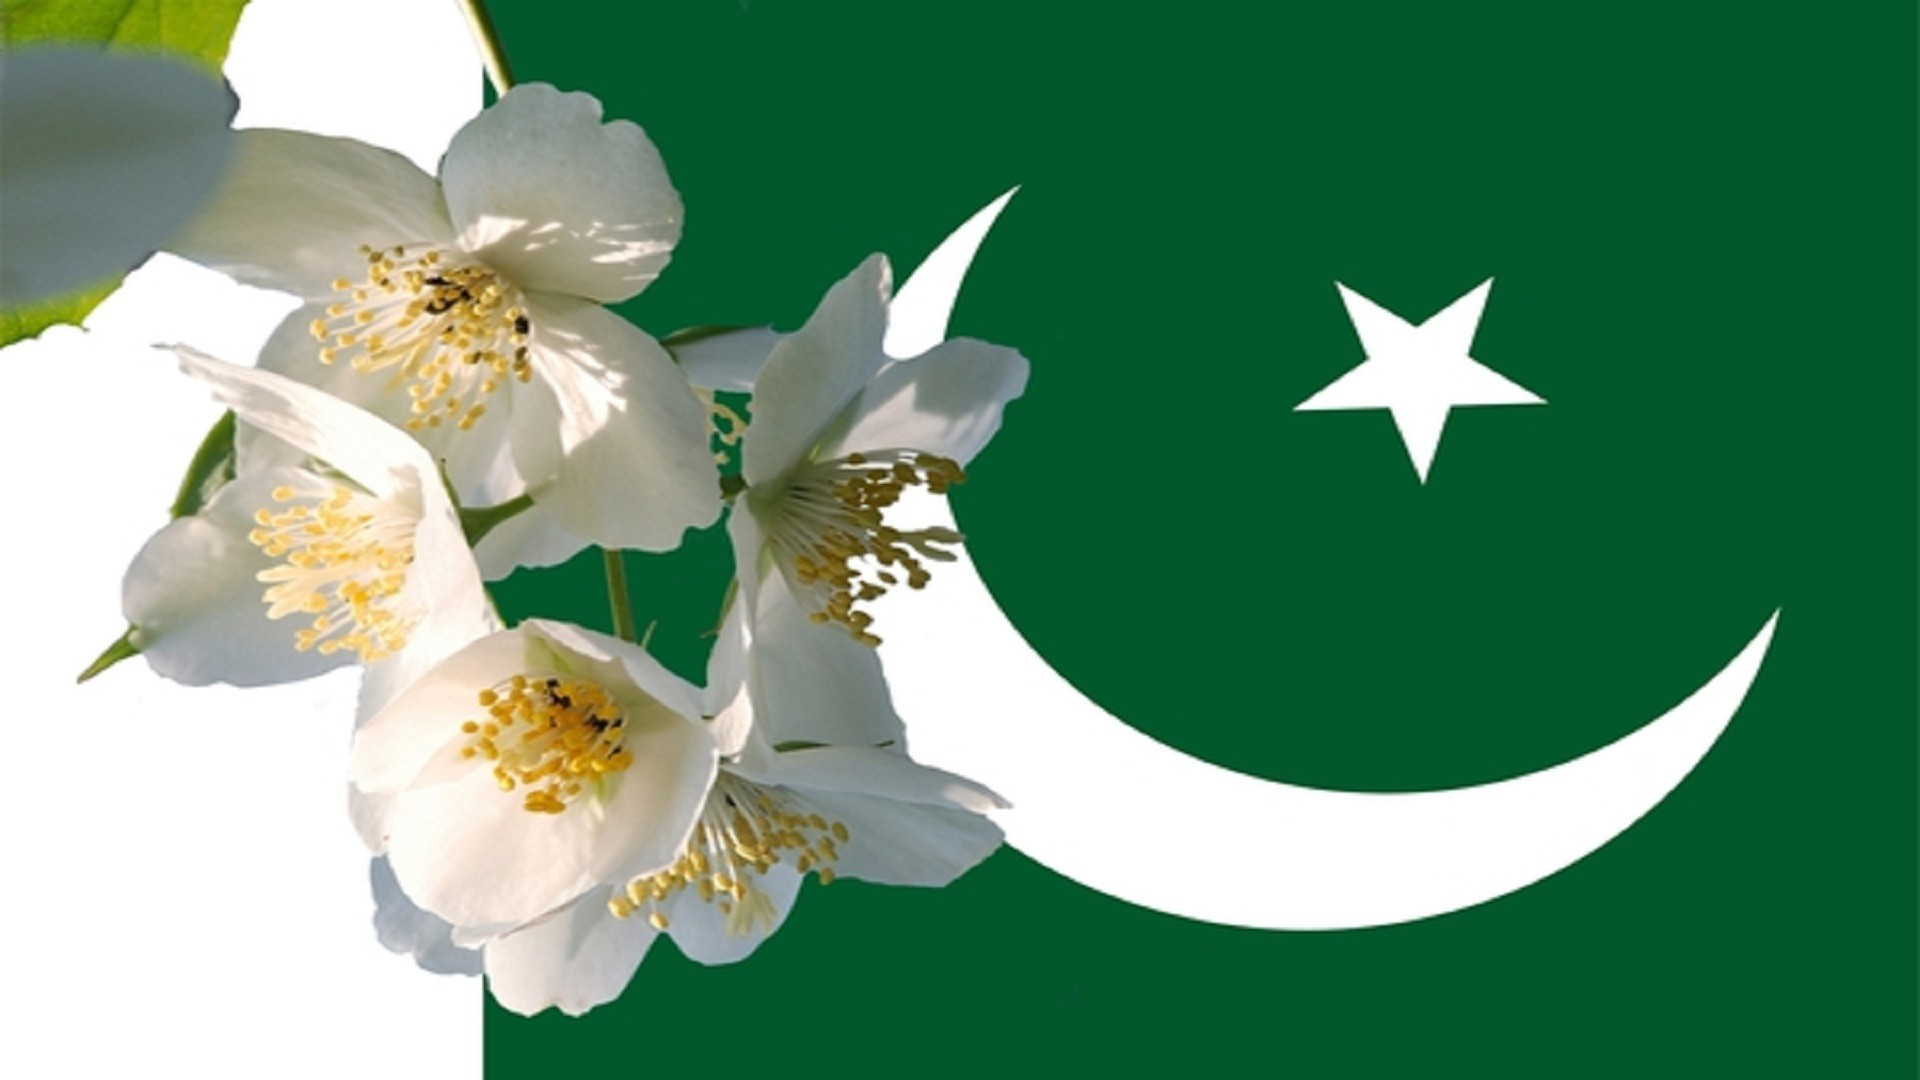 1920x1080 Pakistani Flags New Pictures Pakistani Flags New Wallpapers 2017-2018